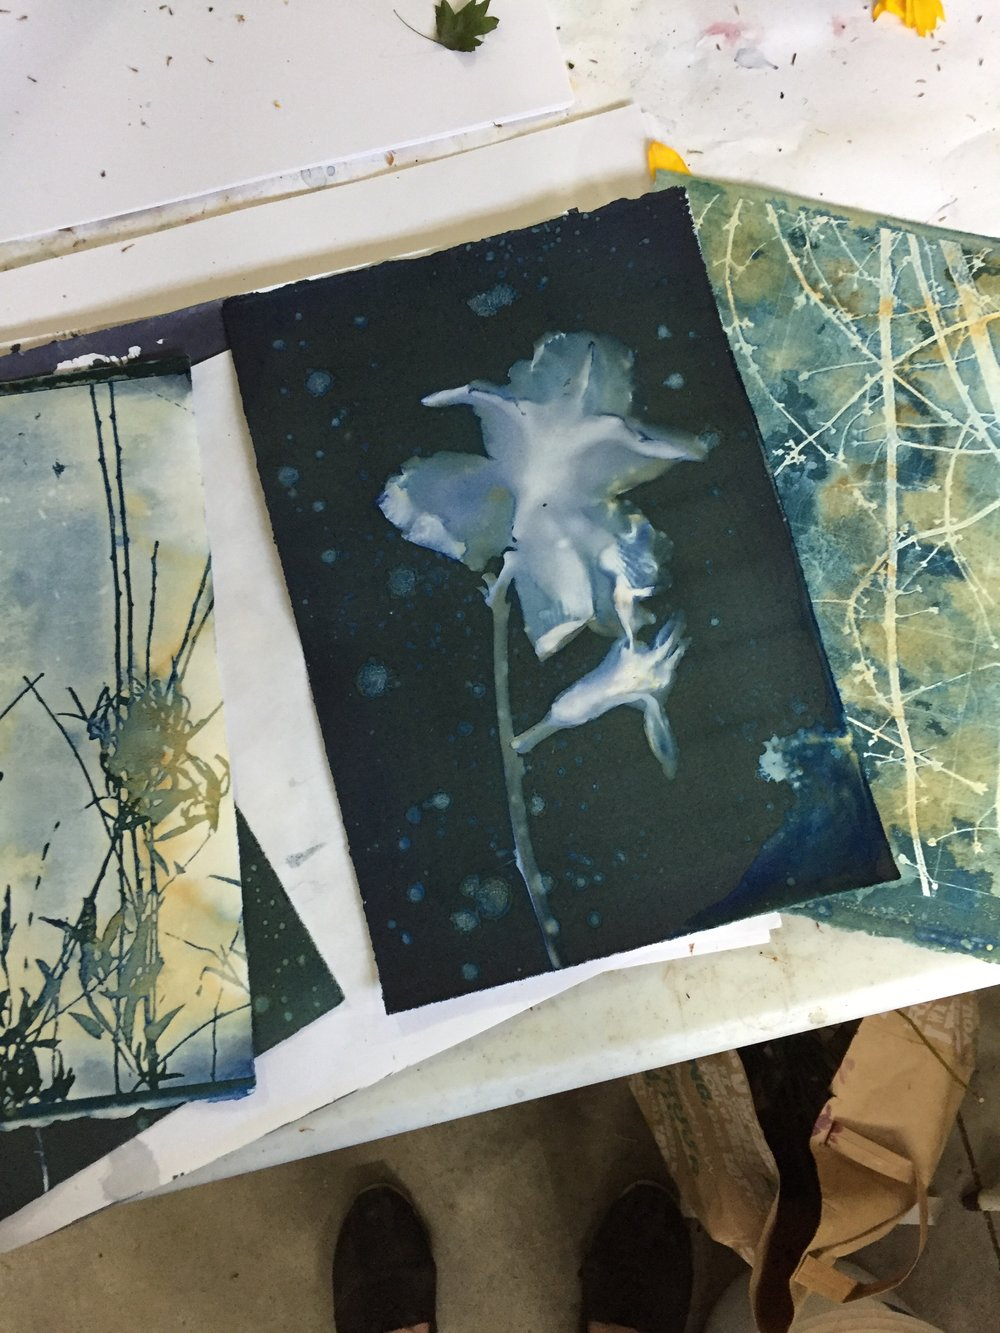 A few of the wet cyanotypes created last weekend